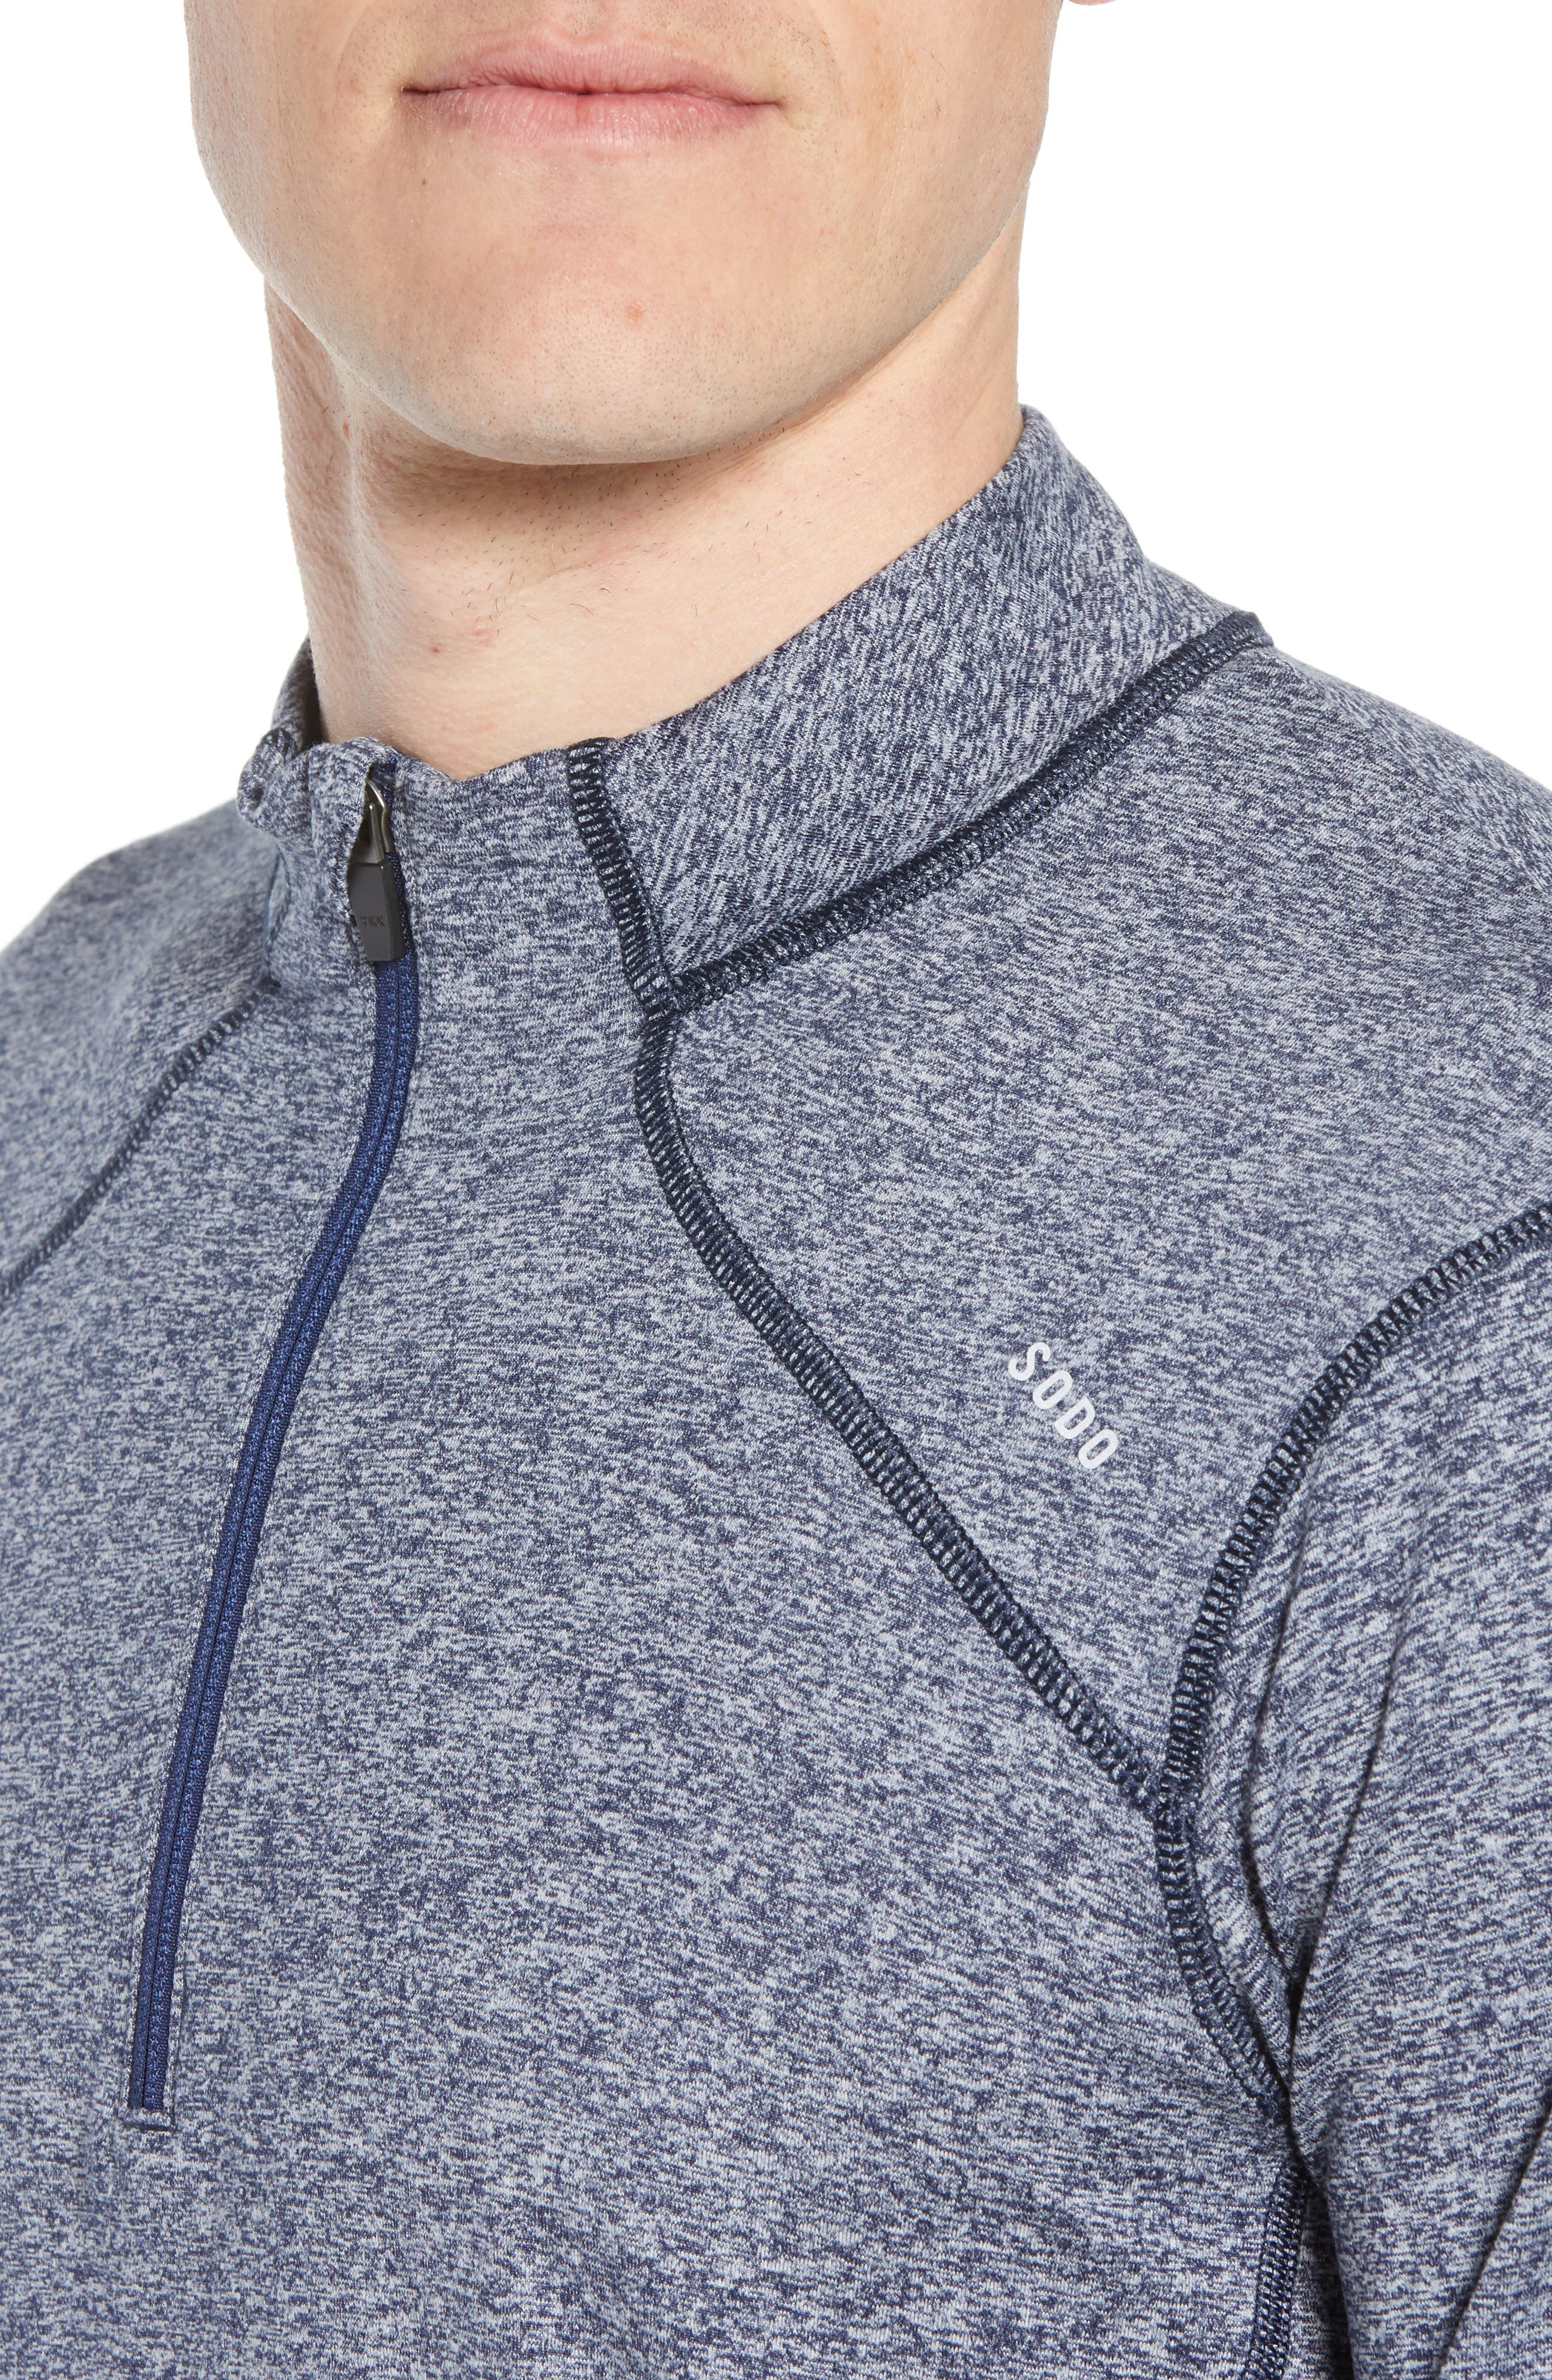 'Elevate' Moisture Wicking Stretch Quarter Zip Pullover,                             Alternate thumbnail 4, color,                             Heather Navy/ Navy